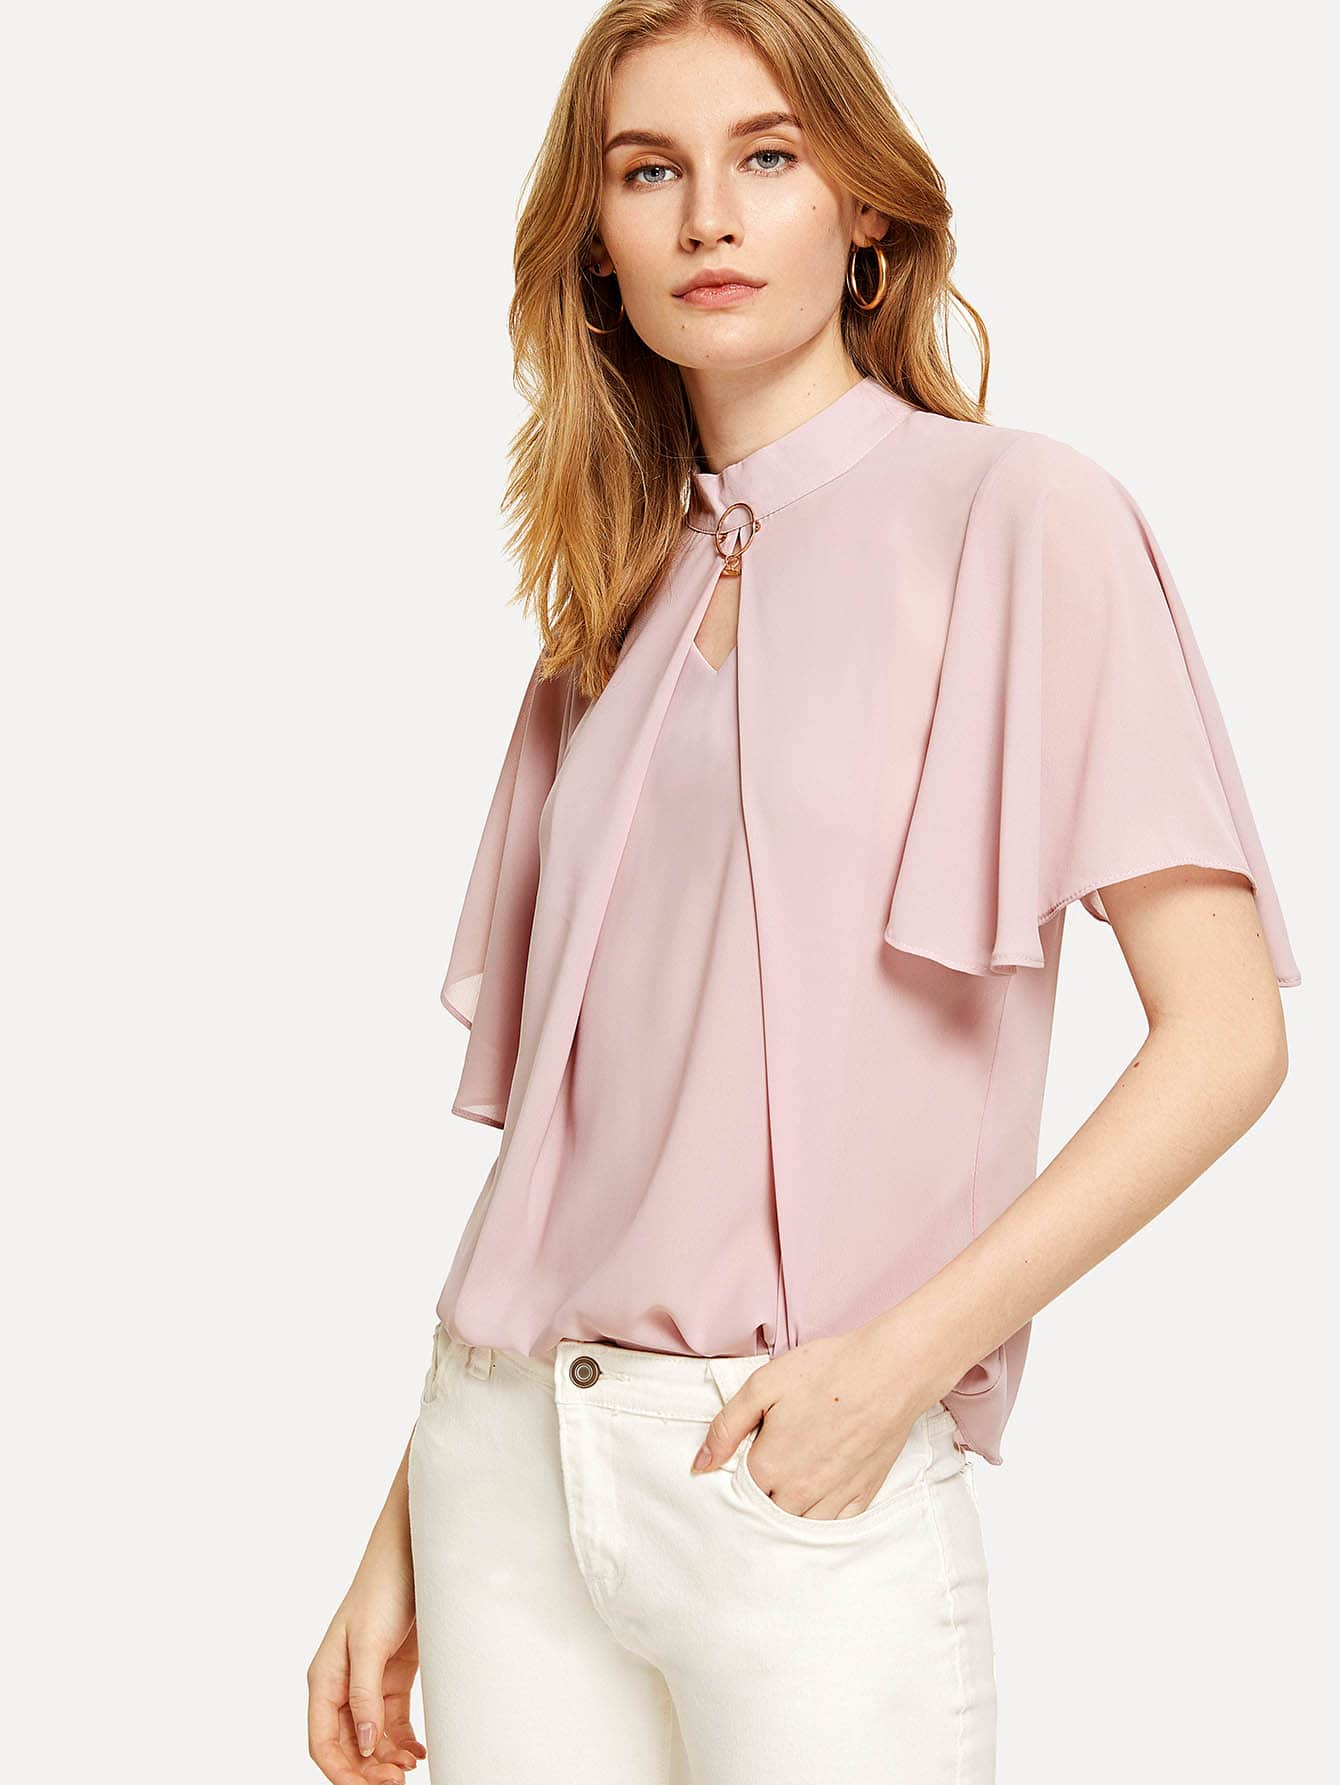 Fluted Sleeve Ring Detail Blouse bow detail fluted sleeve laser cut scalloped blouse